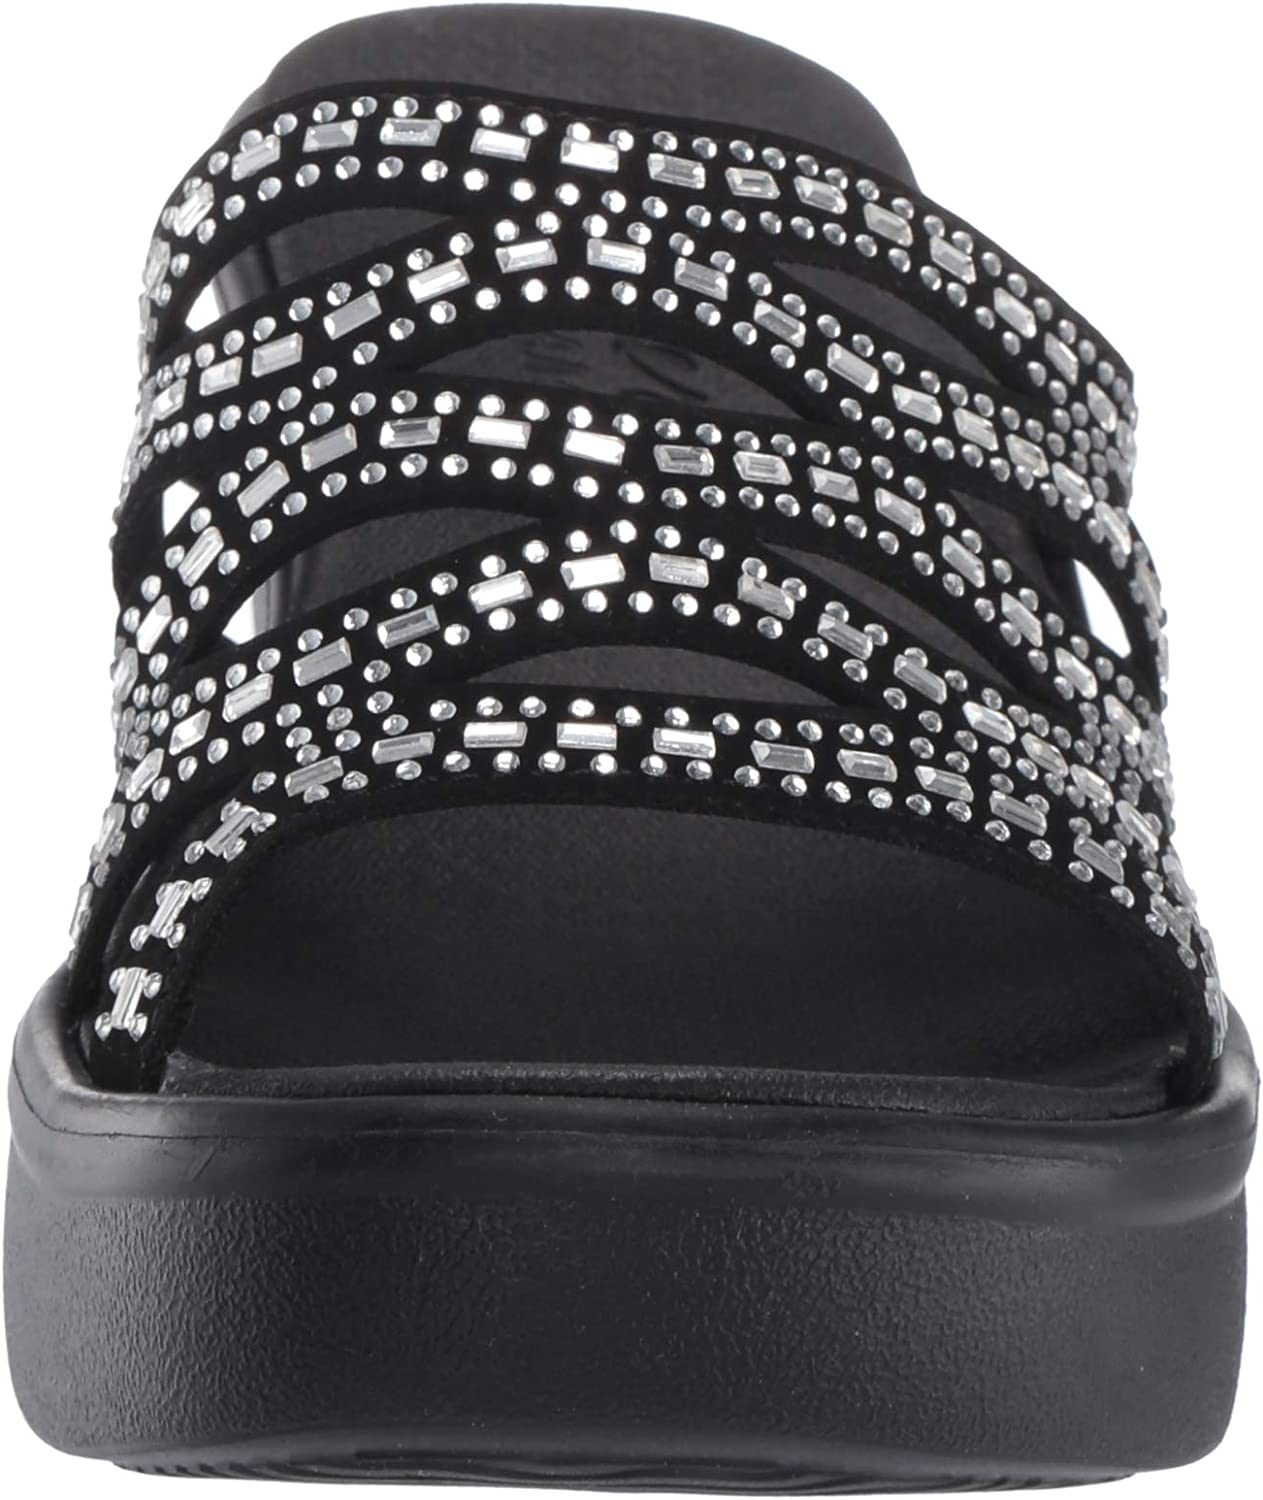 Skechers Womens Rumble Up-Funny Business-High Wedge Rhinestone Sandal